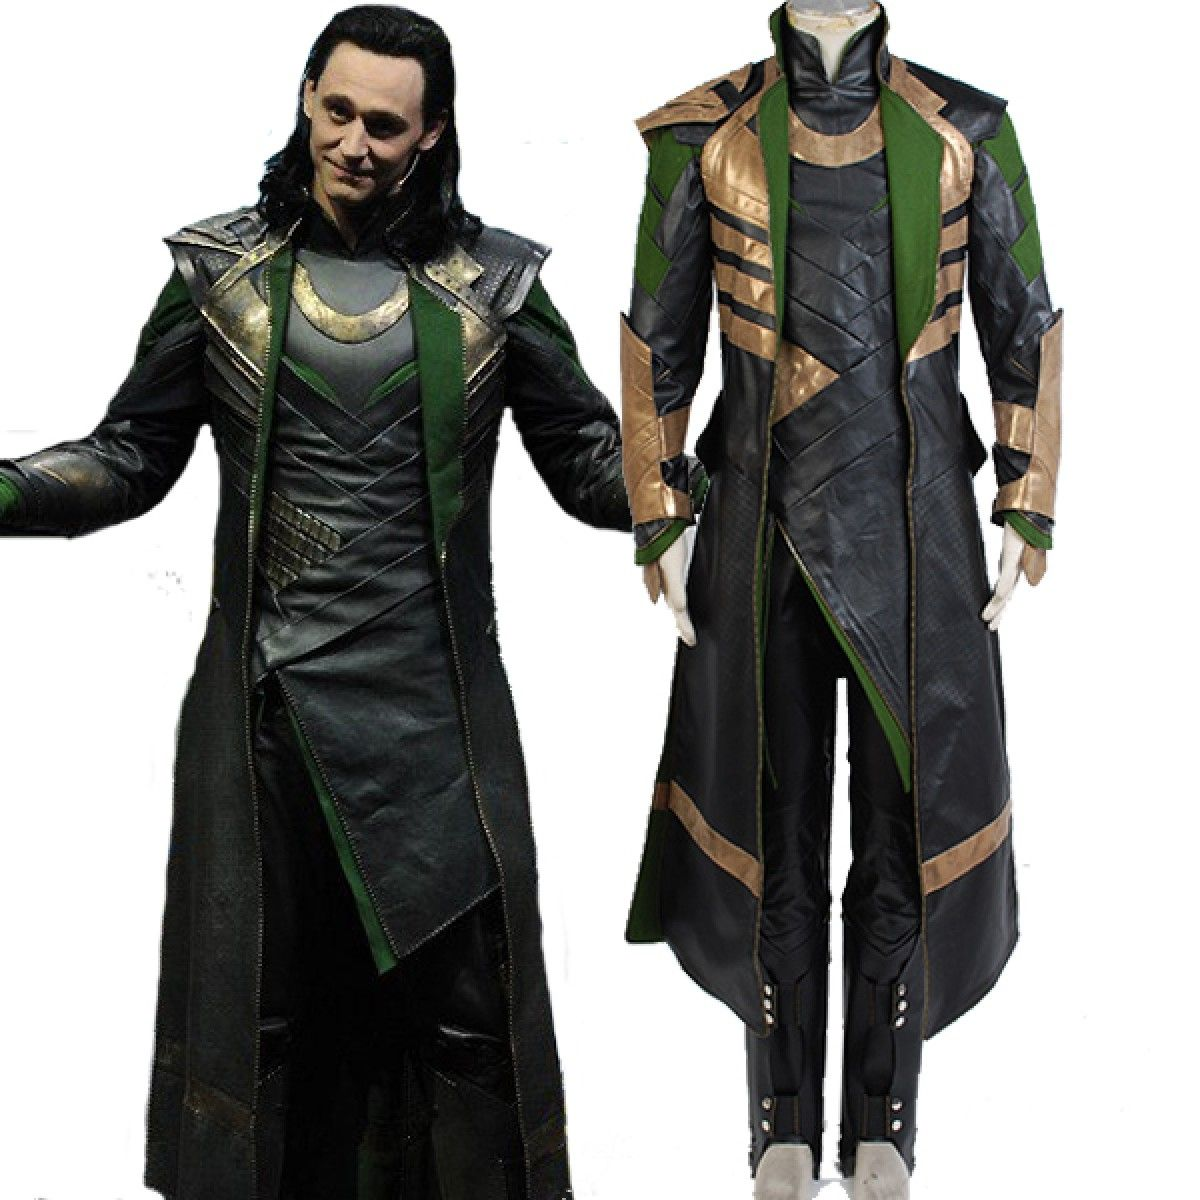 Thor The Dark World Loki Cosplay Costume  Whole Set